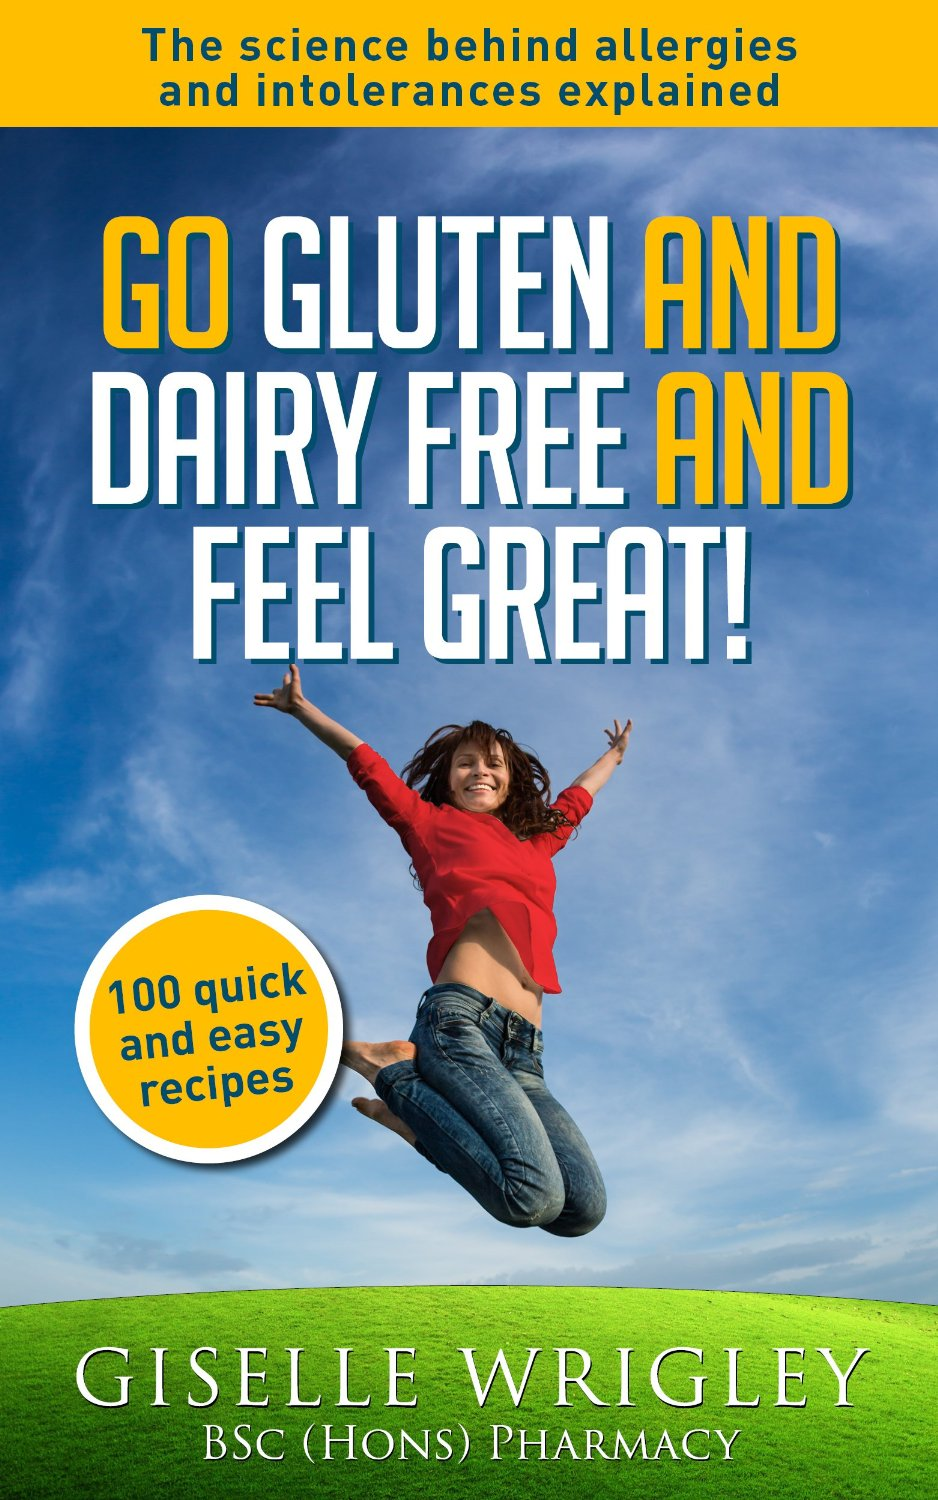 Go Gluten and Dairy Free and Feel Great!: 100 quick and easy recipes plus the science explained free download